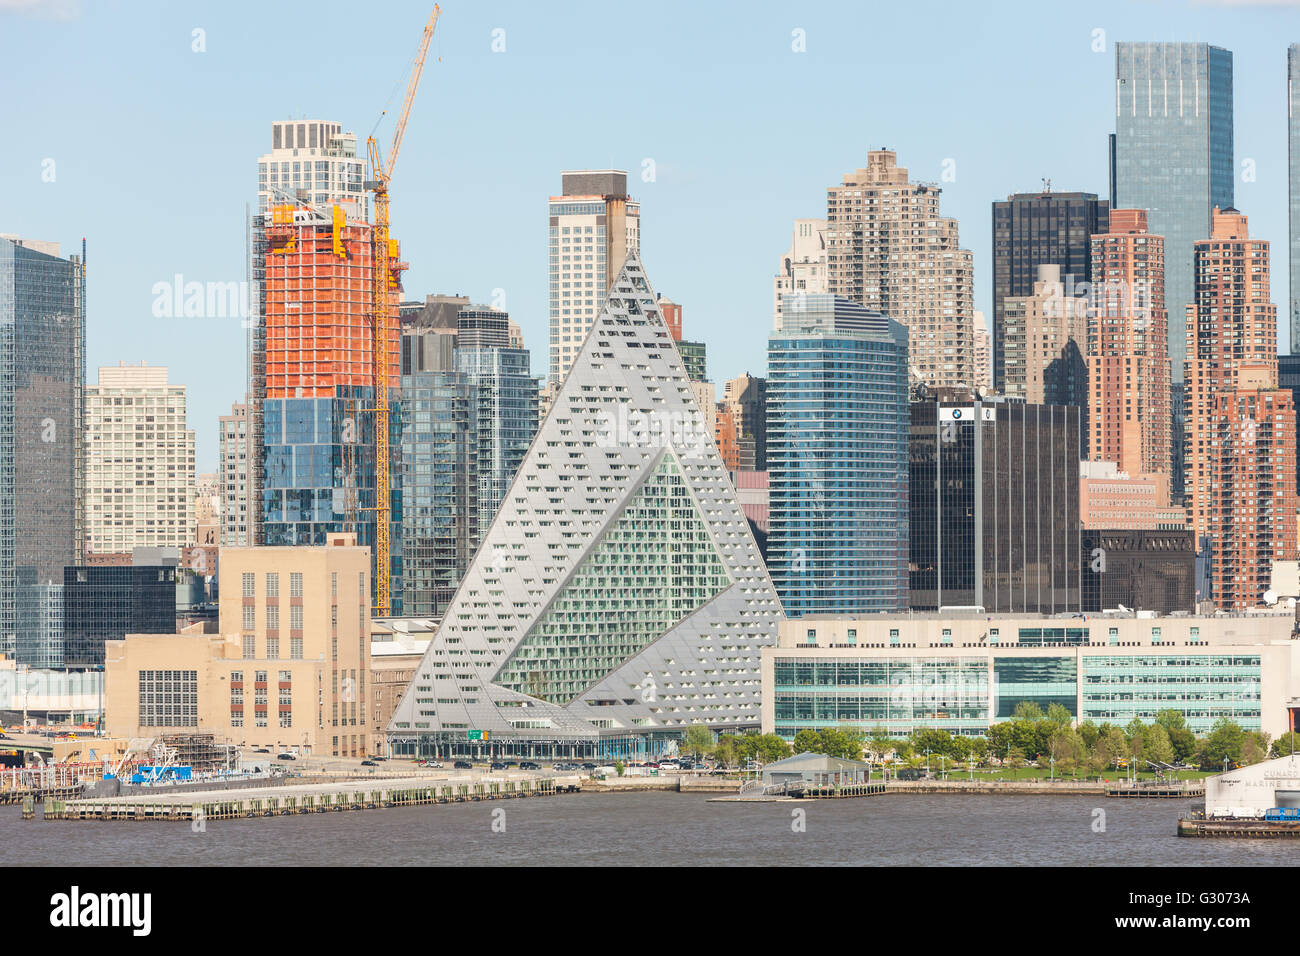 Part of the evolving mid-town skyline, including pyramidal VIA 57 West, on West 57th street, in New York City. - Stock Image